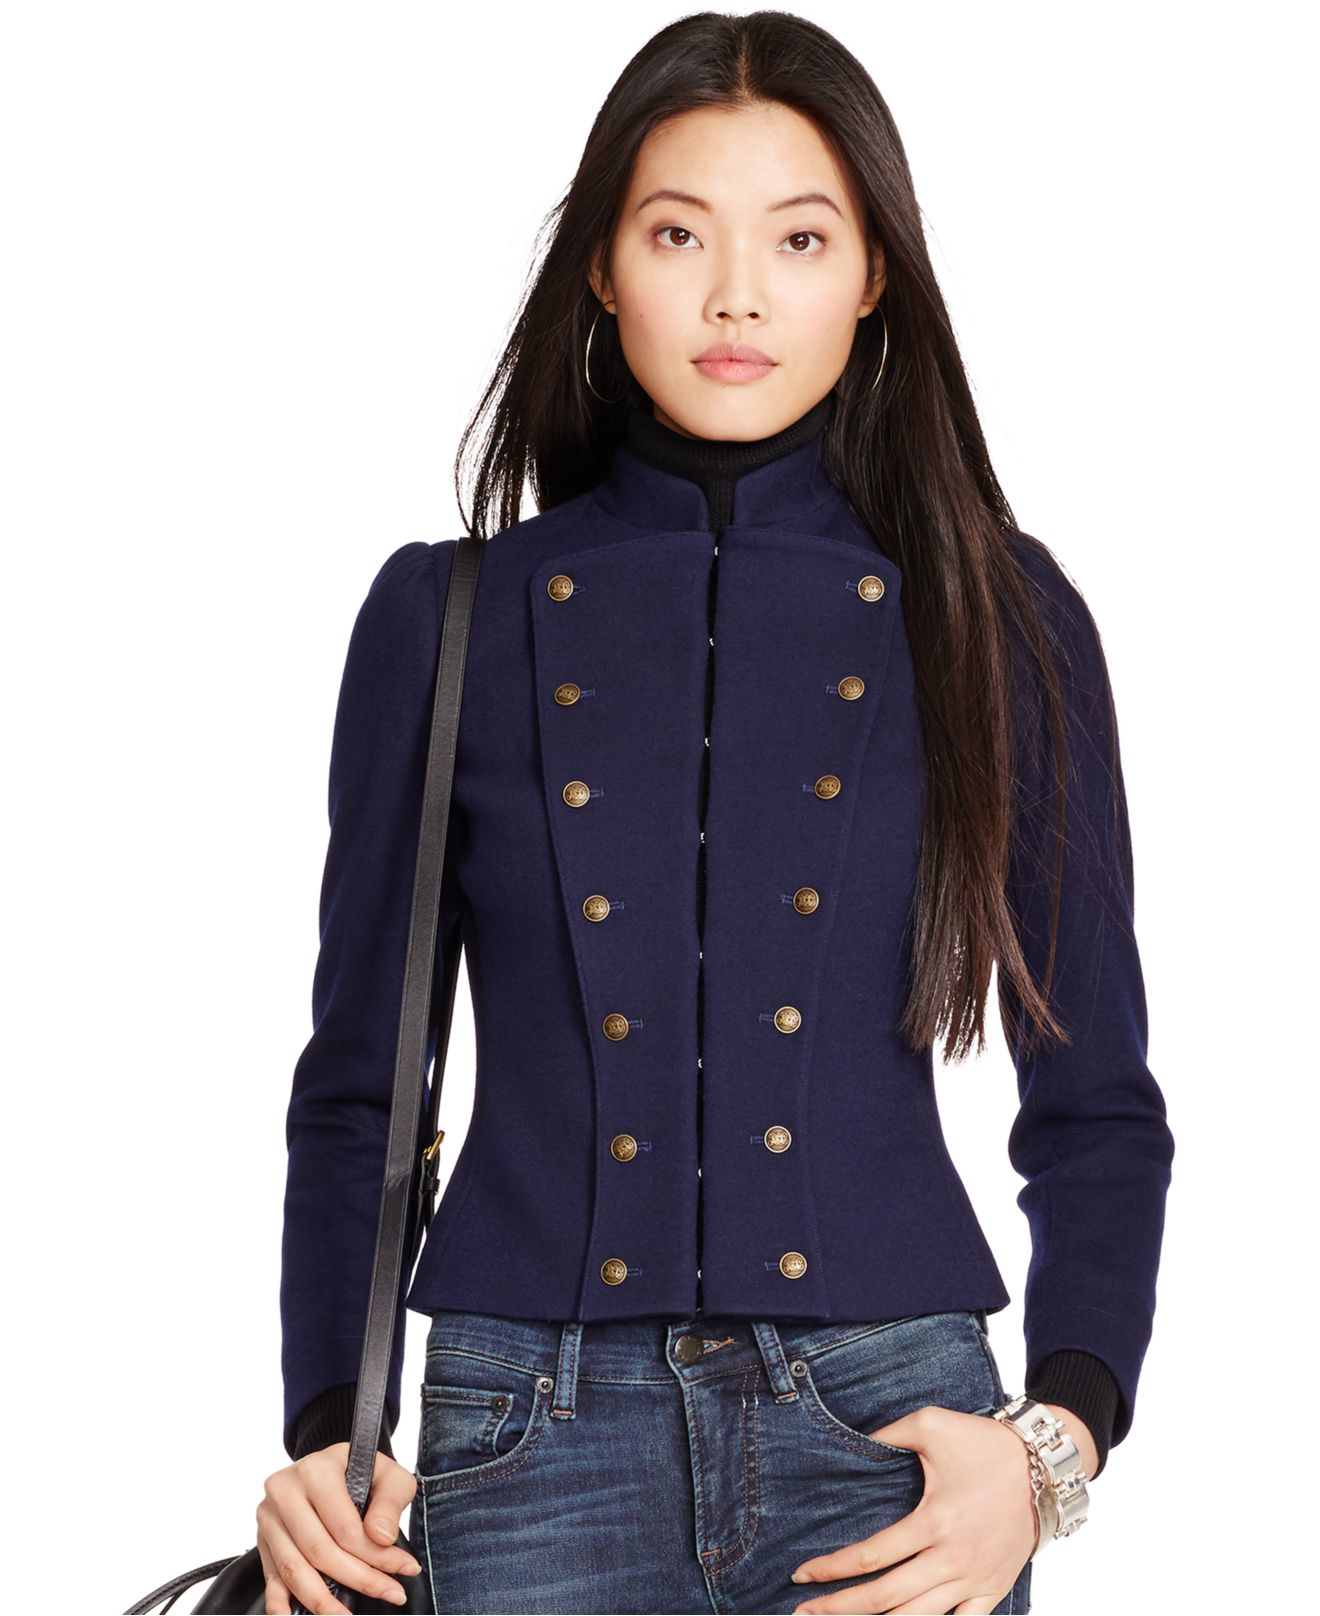 Navy Blue Military Jacket Womens - Best Picture Of Blue Imageve.Org a361d0ffc02